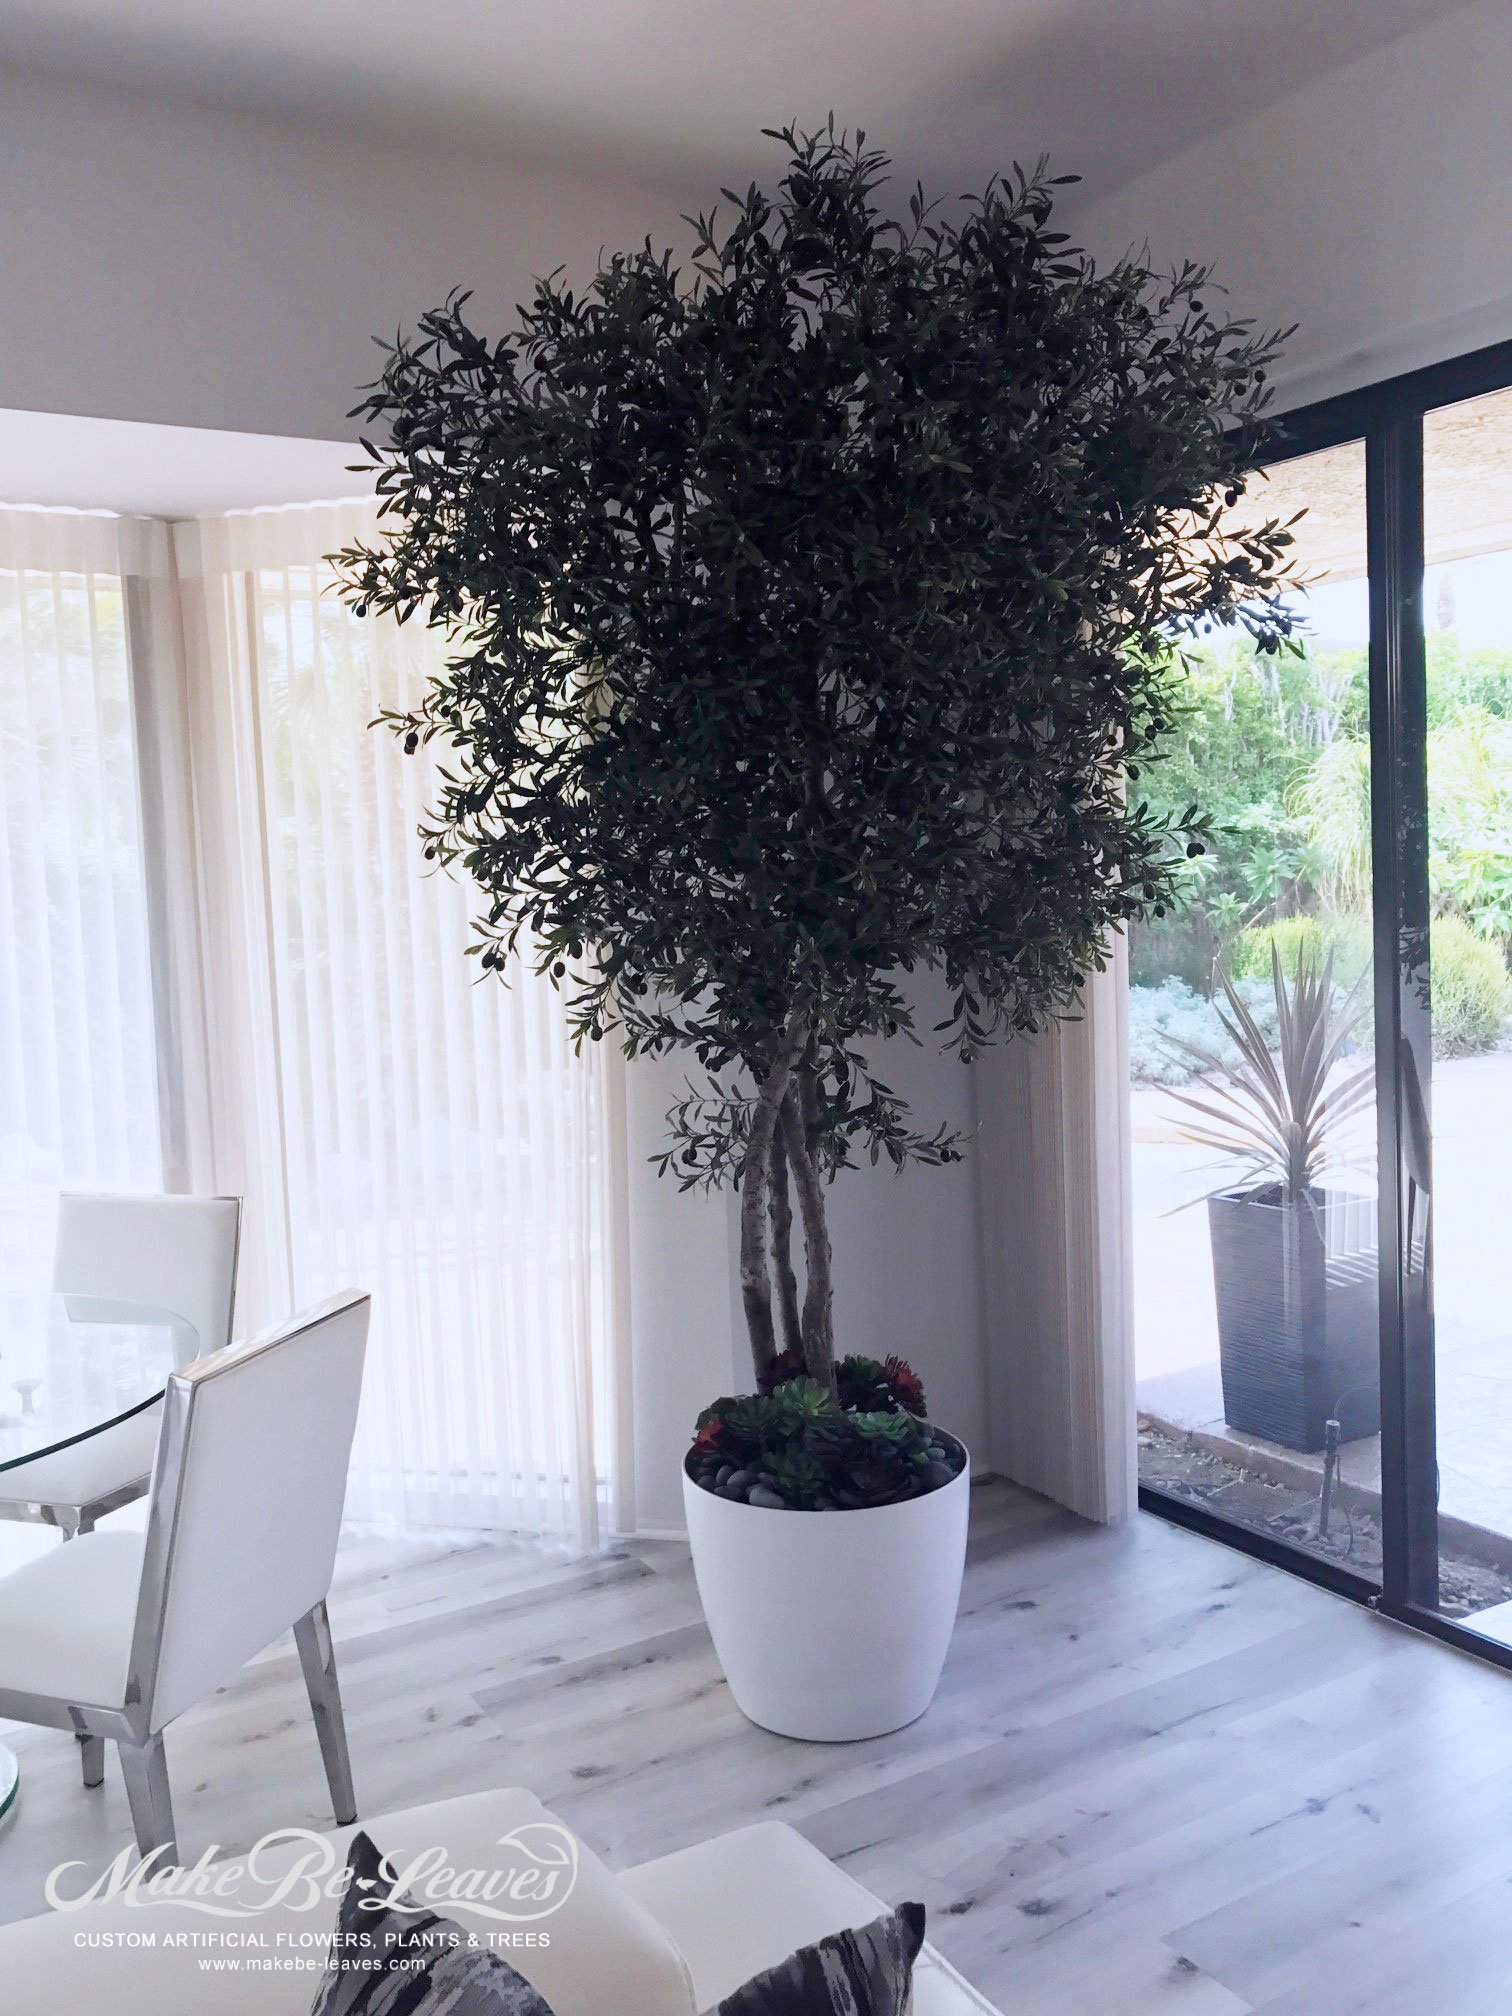 Artificial Olive Trees In Custom Containers Make Be Leaves